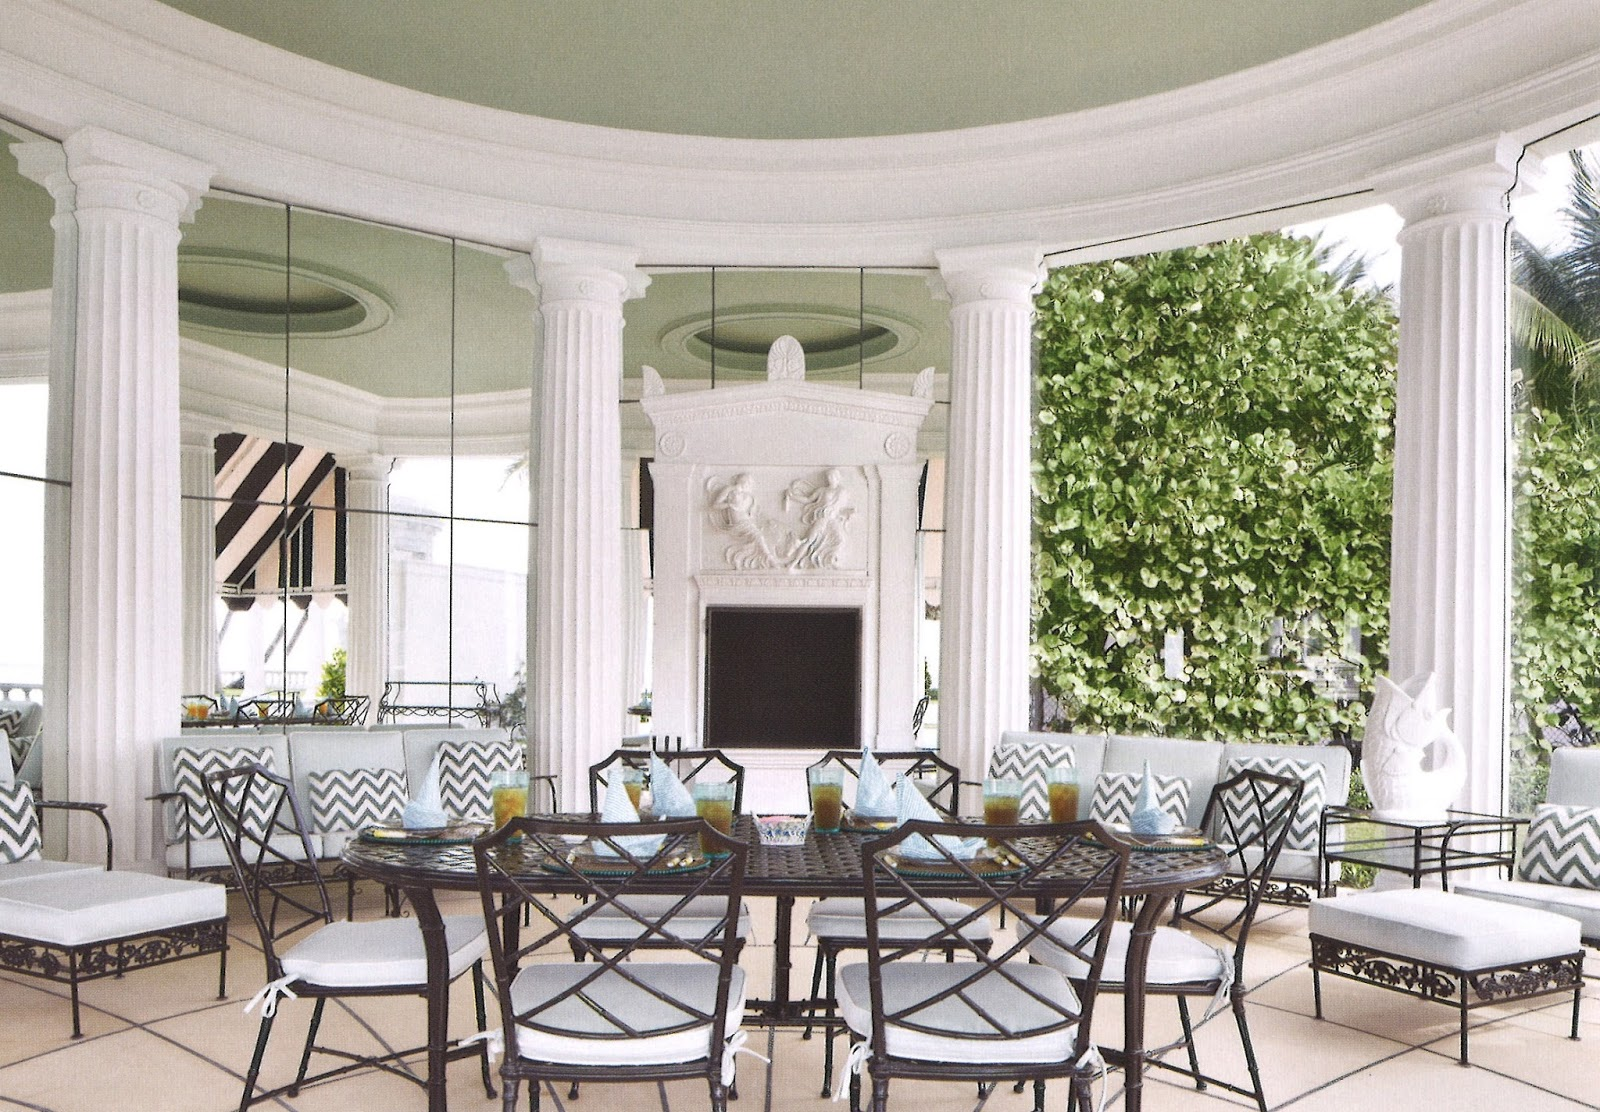 Artemis Interieur Architect Design Palm Beach Chic The Villa Artemis